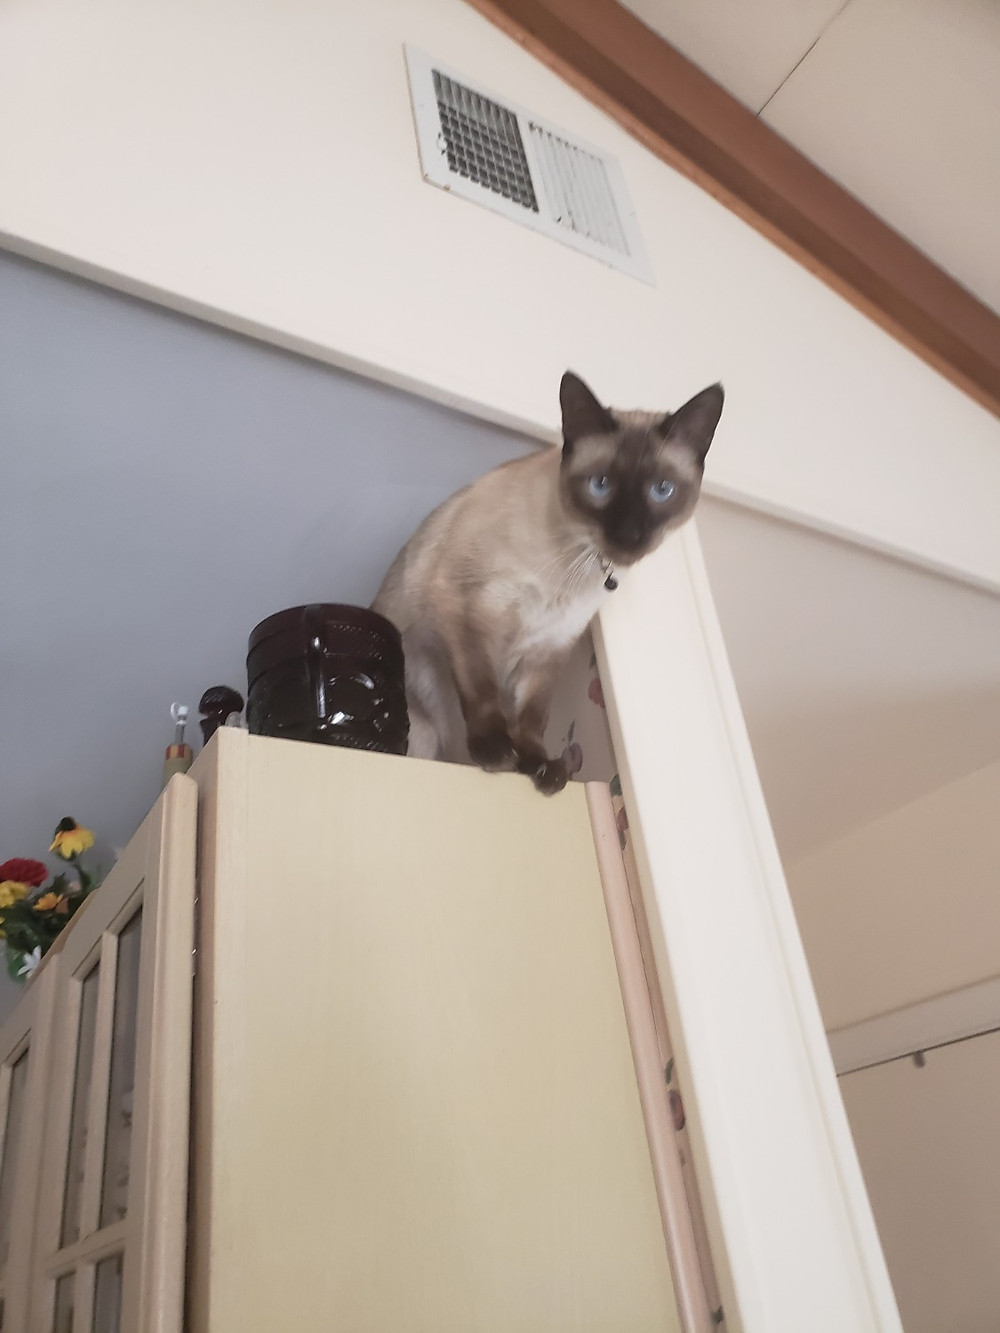 a cat sitting up high on cabinets